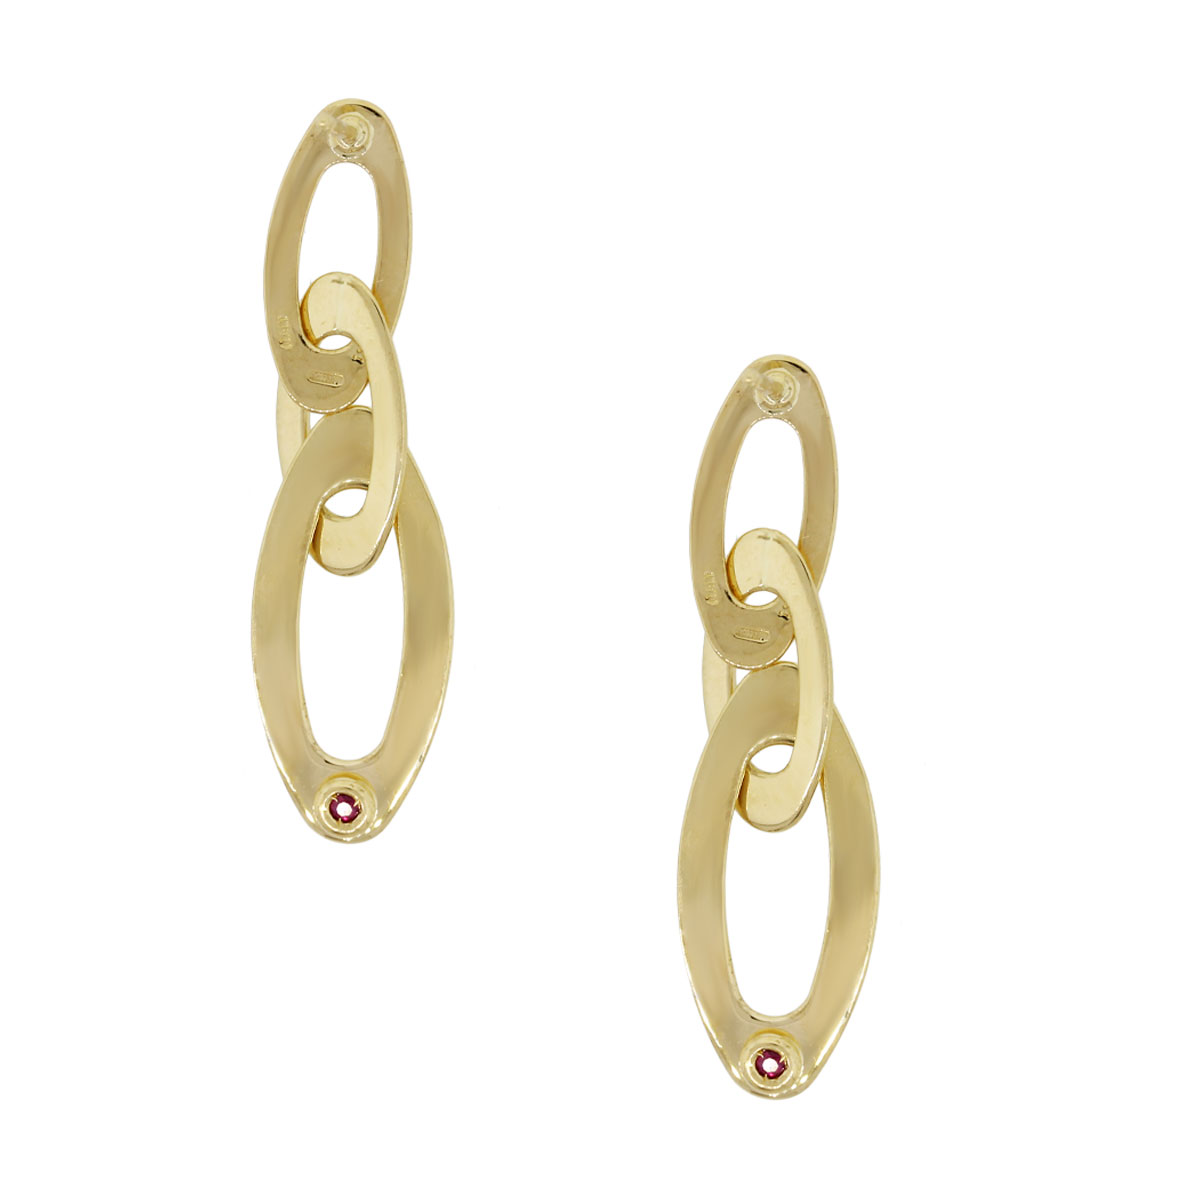 Details about  /Roberto Coin Chic /& Shine 18K Yellow Gold Earrings